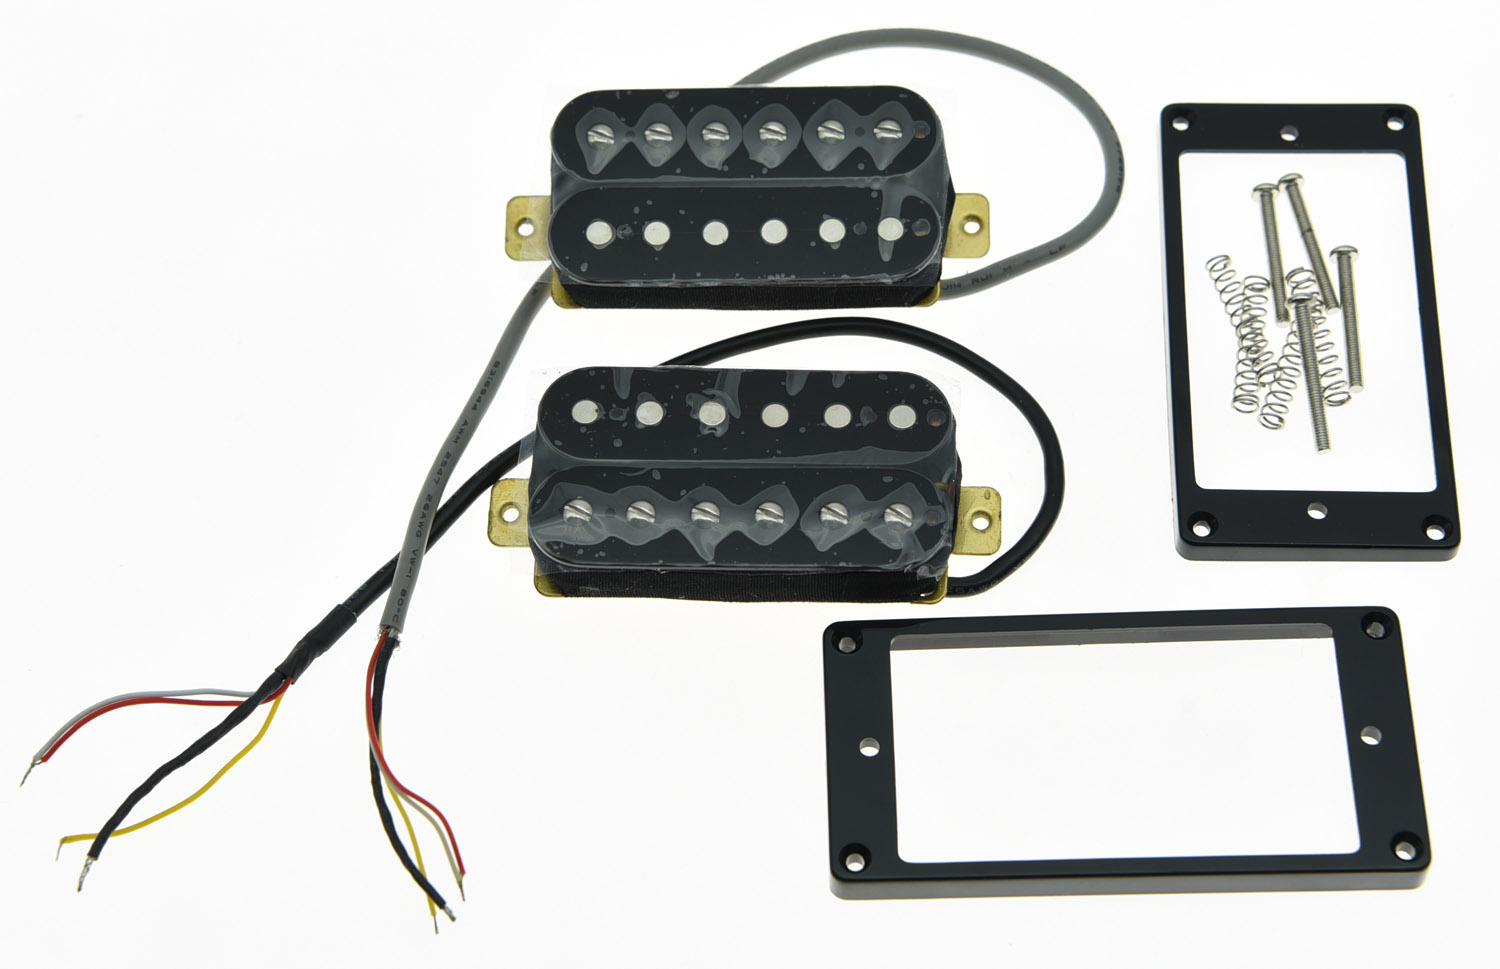 Set of 2 Black Alnico V Guitar Humbucker Neck&Bridge Pickup Power Sound Pickups new humbucker pickup set gold four conductor wires alnico v pickups